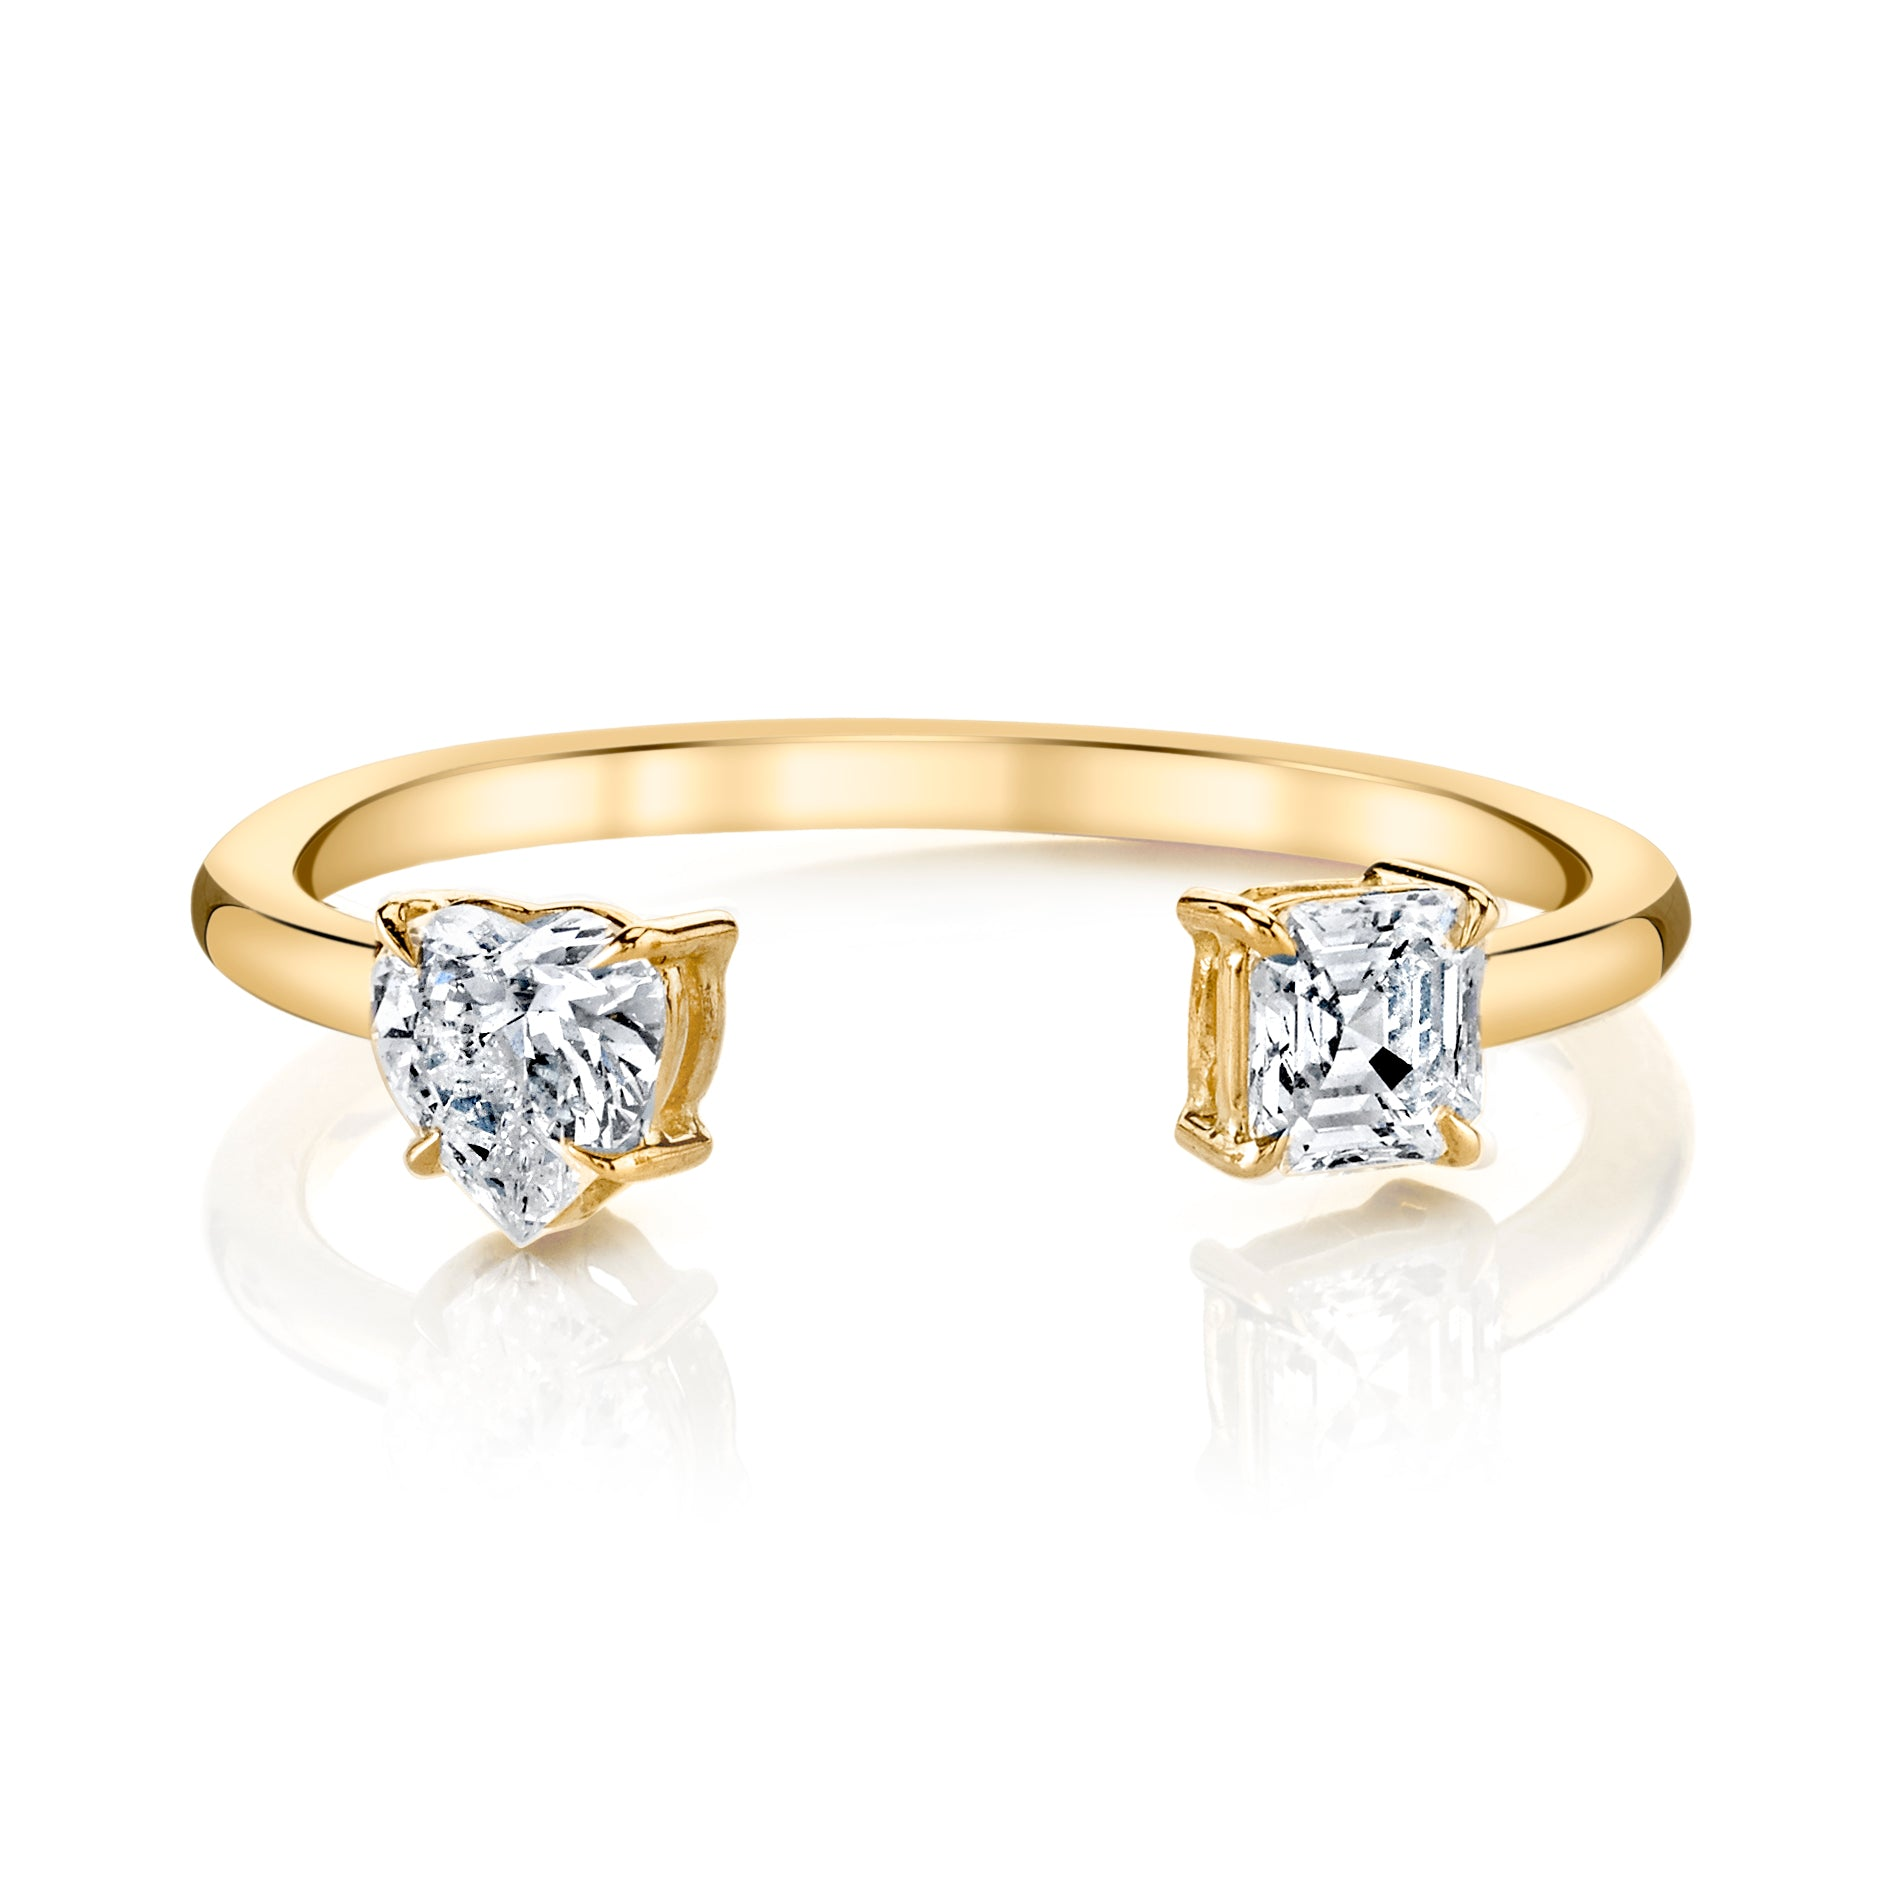 general rings ring information with baguette asscher engagement diamond the round and cut about